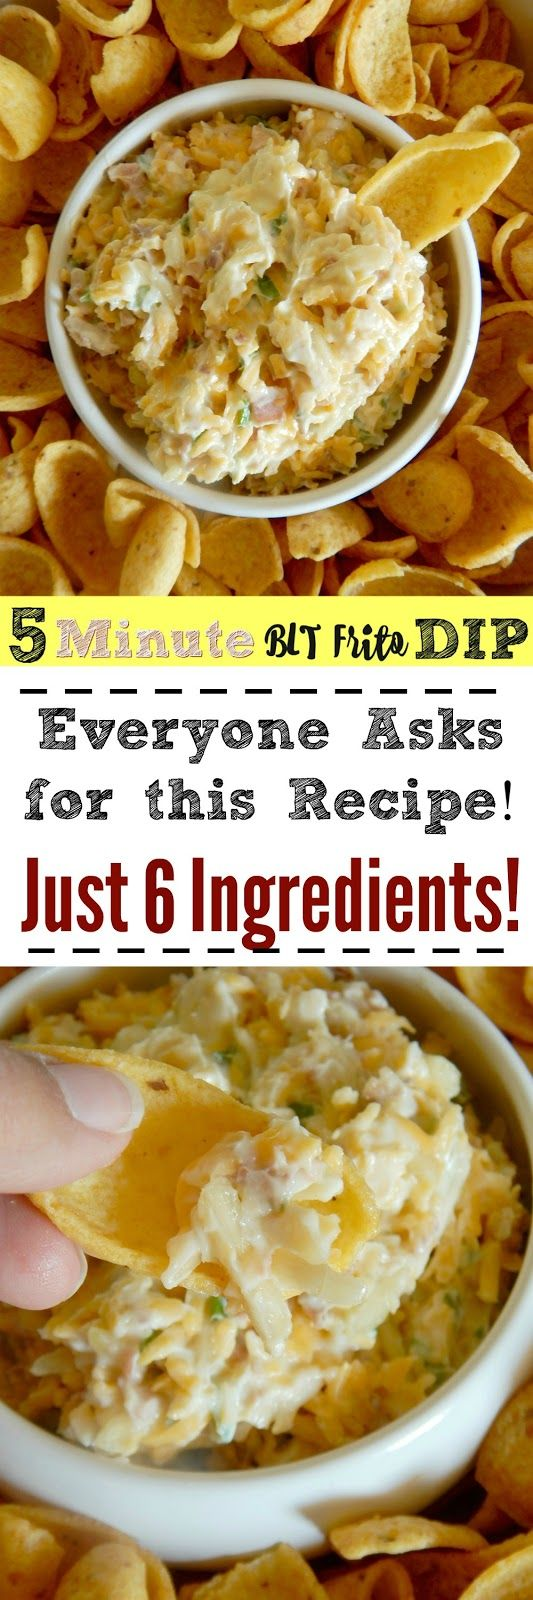 5 Minute BLT Frito Dip...the perfect summer snack! Served great poolside, at a barbecue or for a potluck!